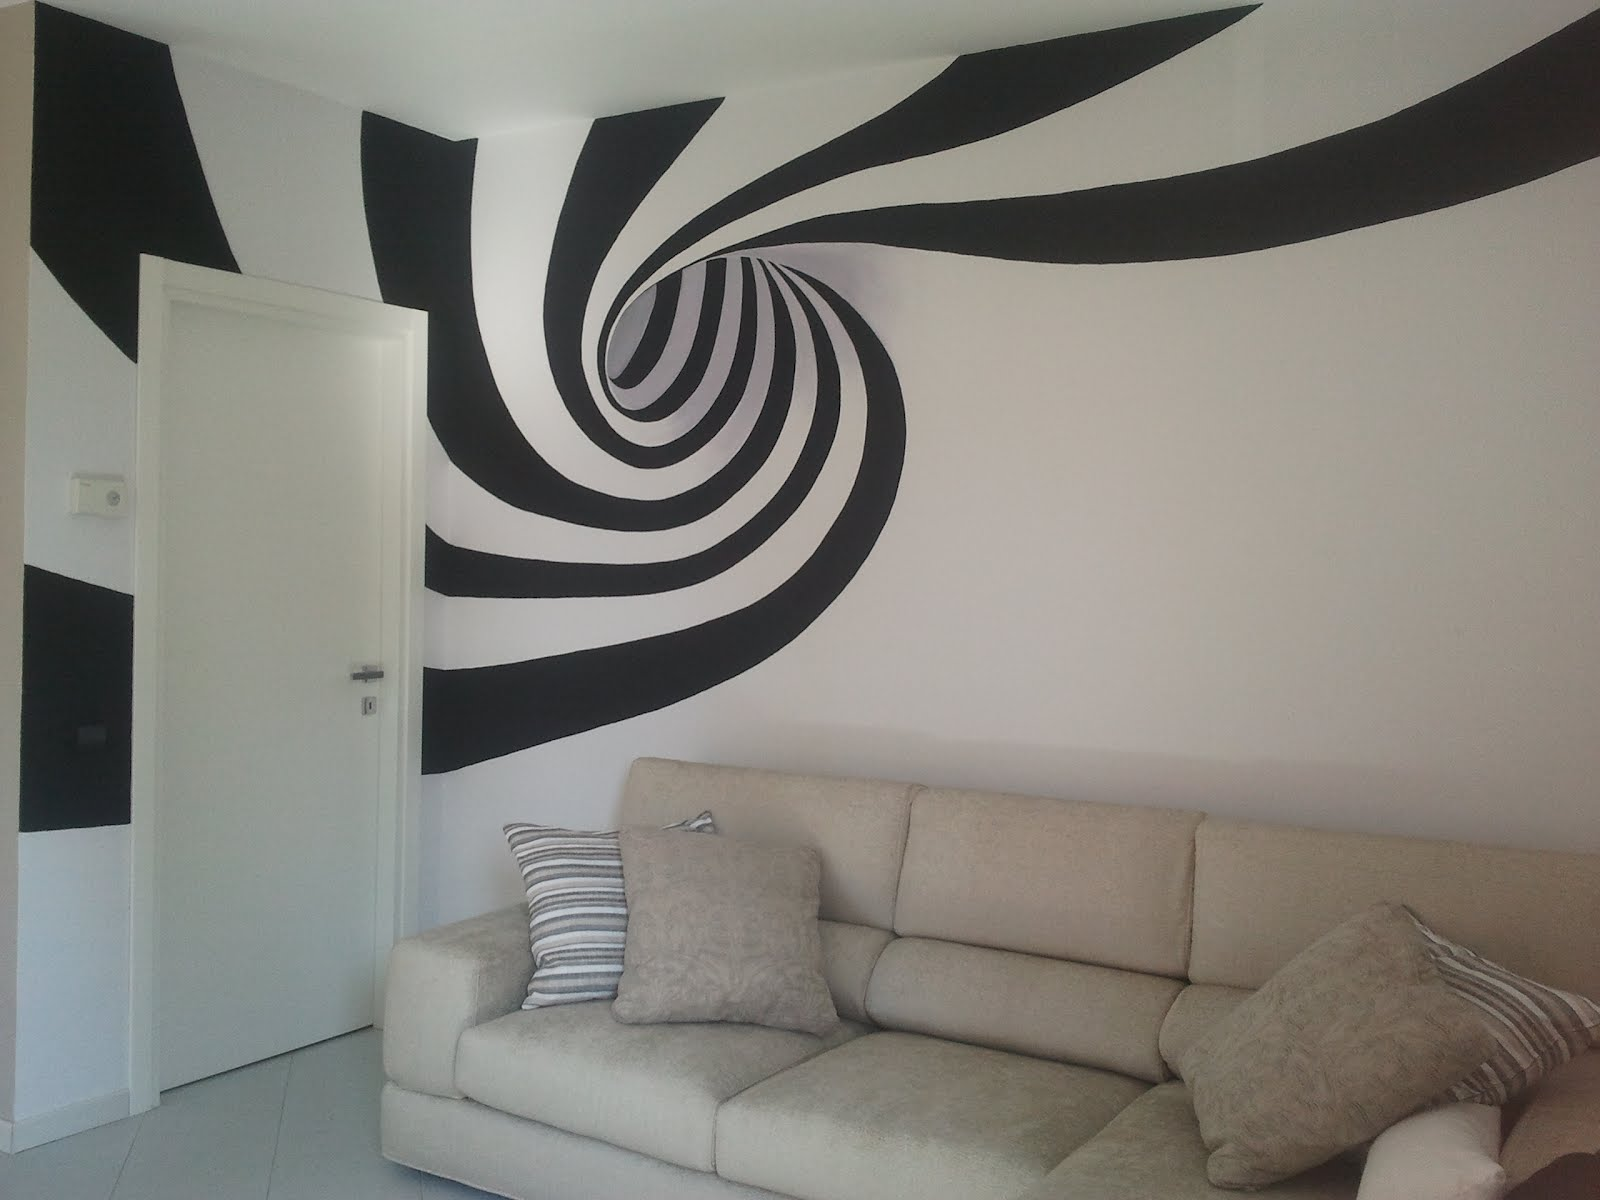 Decorarte murales con spirale for Disegni su pareti